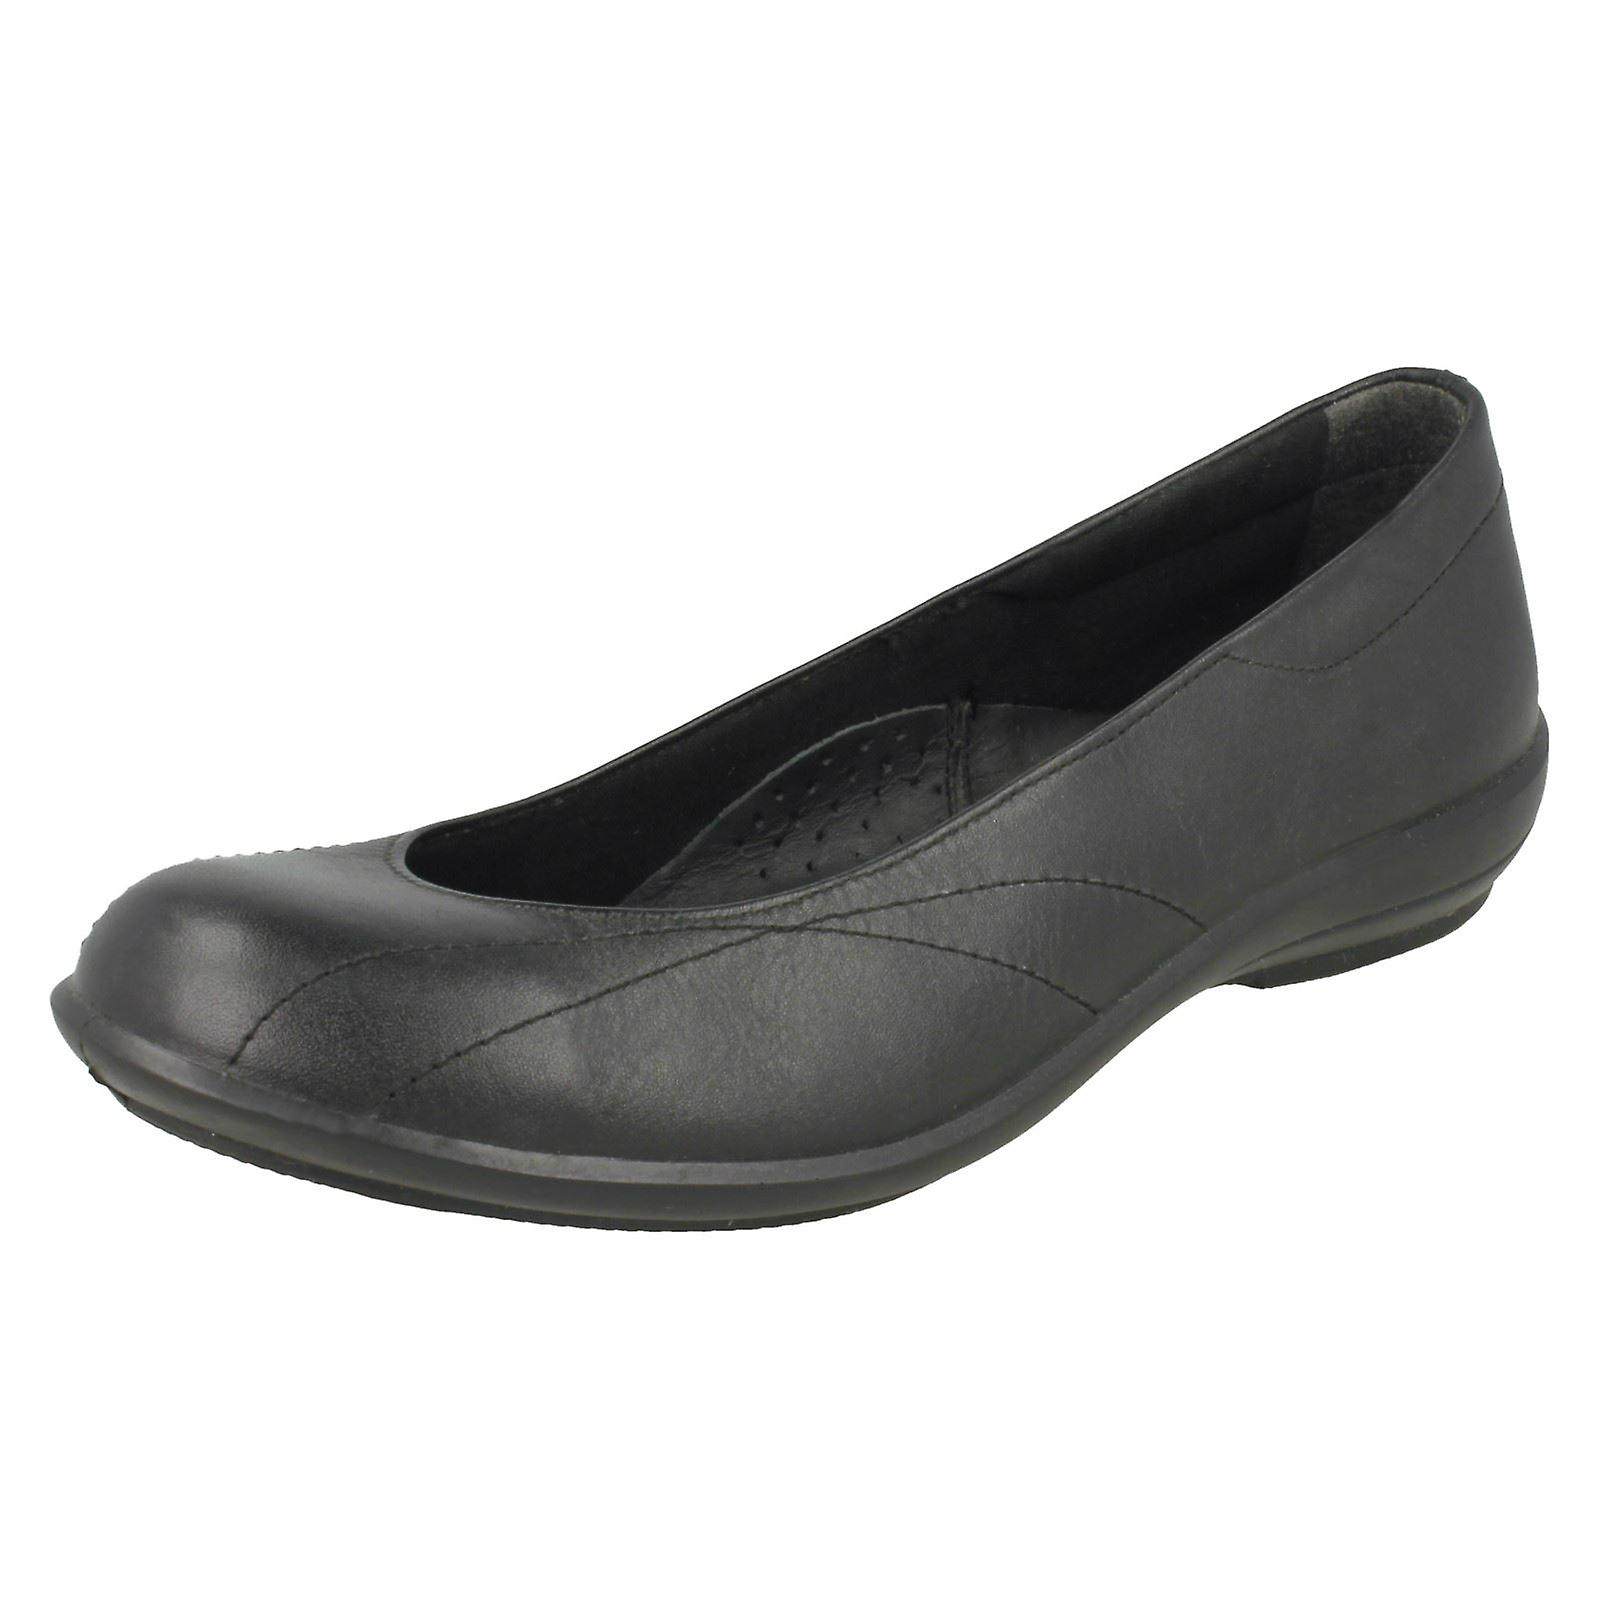 B simple dames large montage chaussures plates Honiton